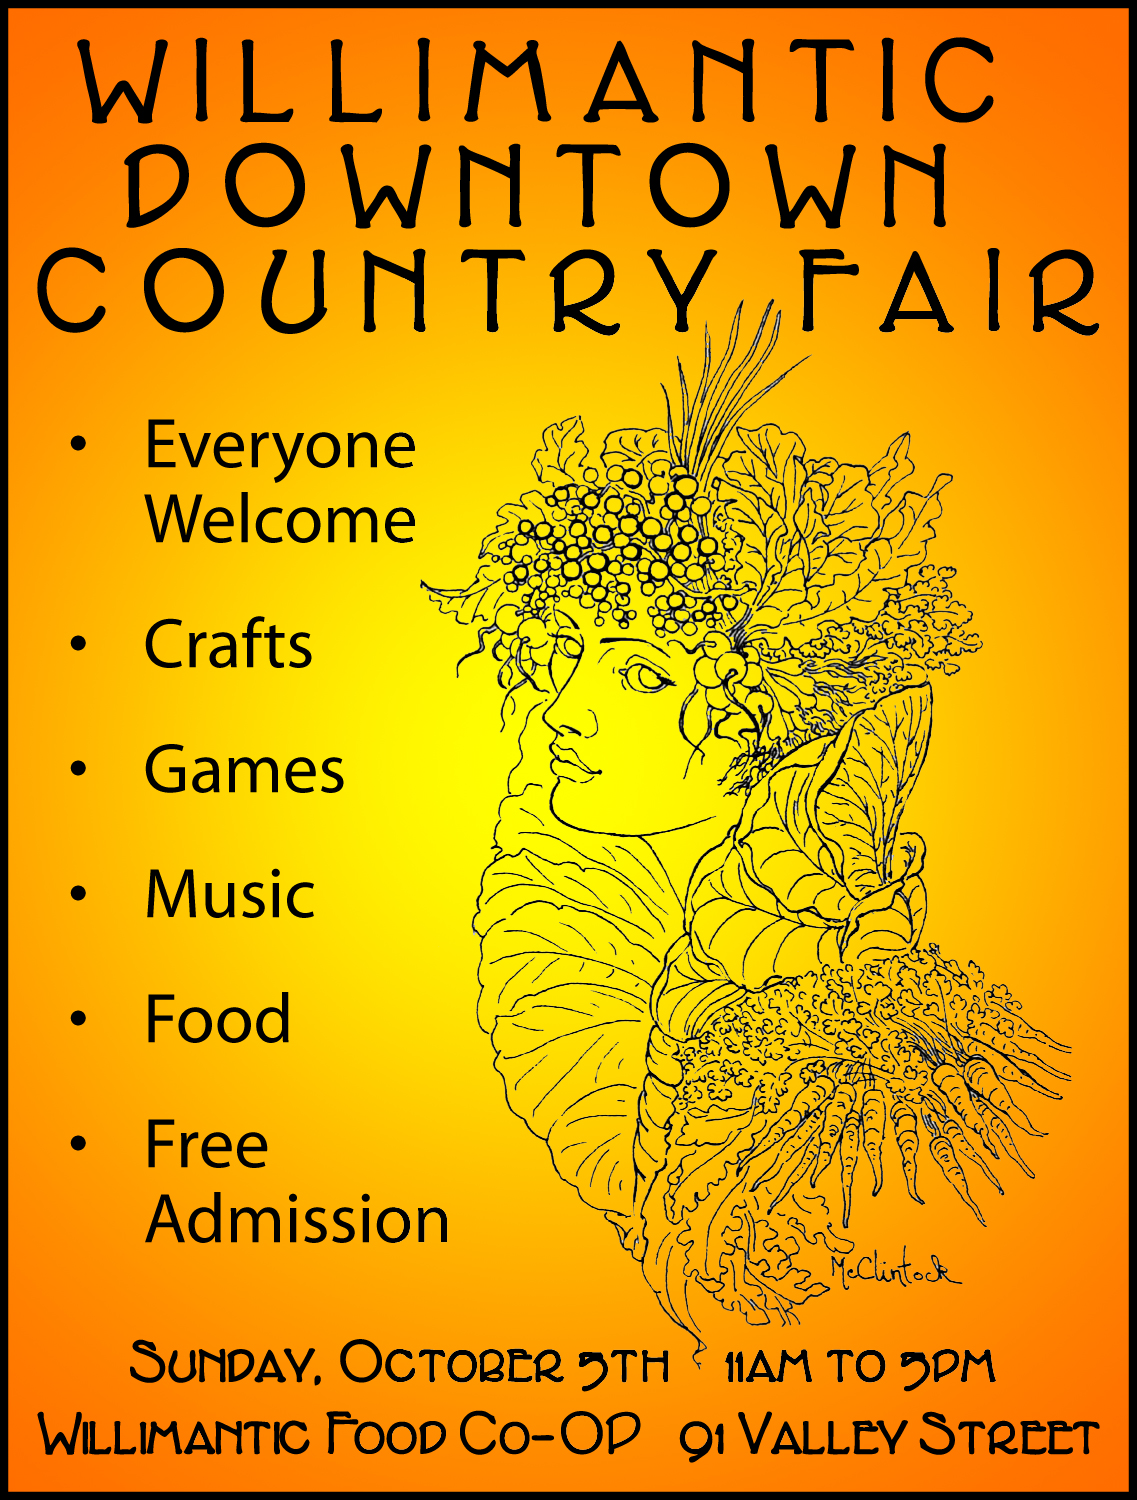 Downtown Country Fair 2014